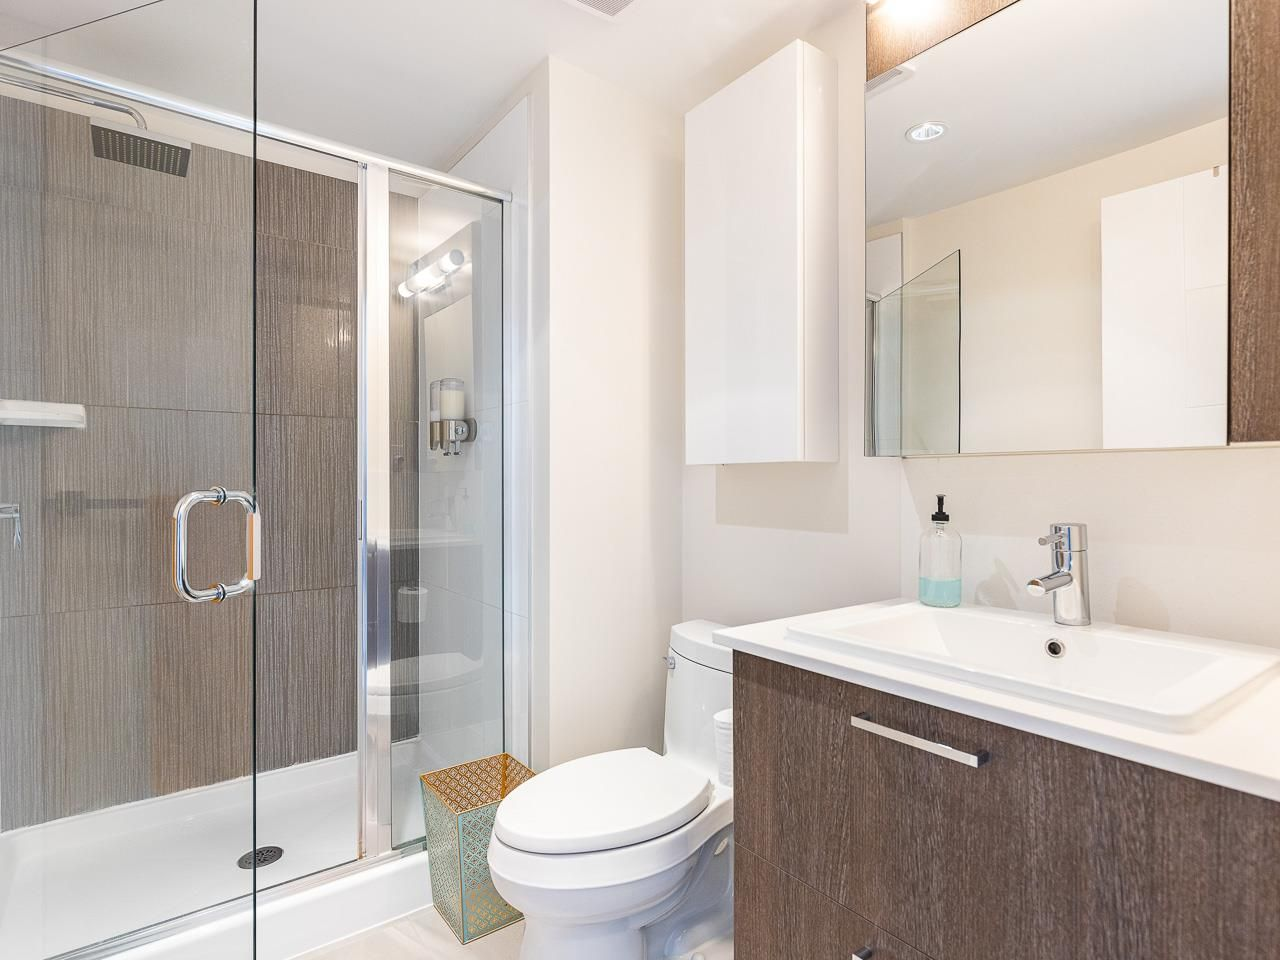 Photo 14: Photos: 306 202 E 24TH AVENUE in Vancouver: Main Condo for sale (Vancouver East)  : MLS®# R2406713